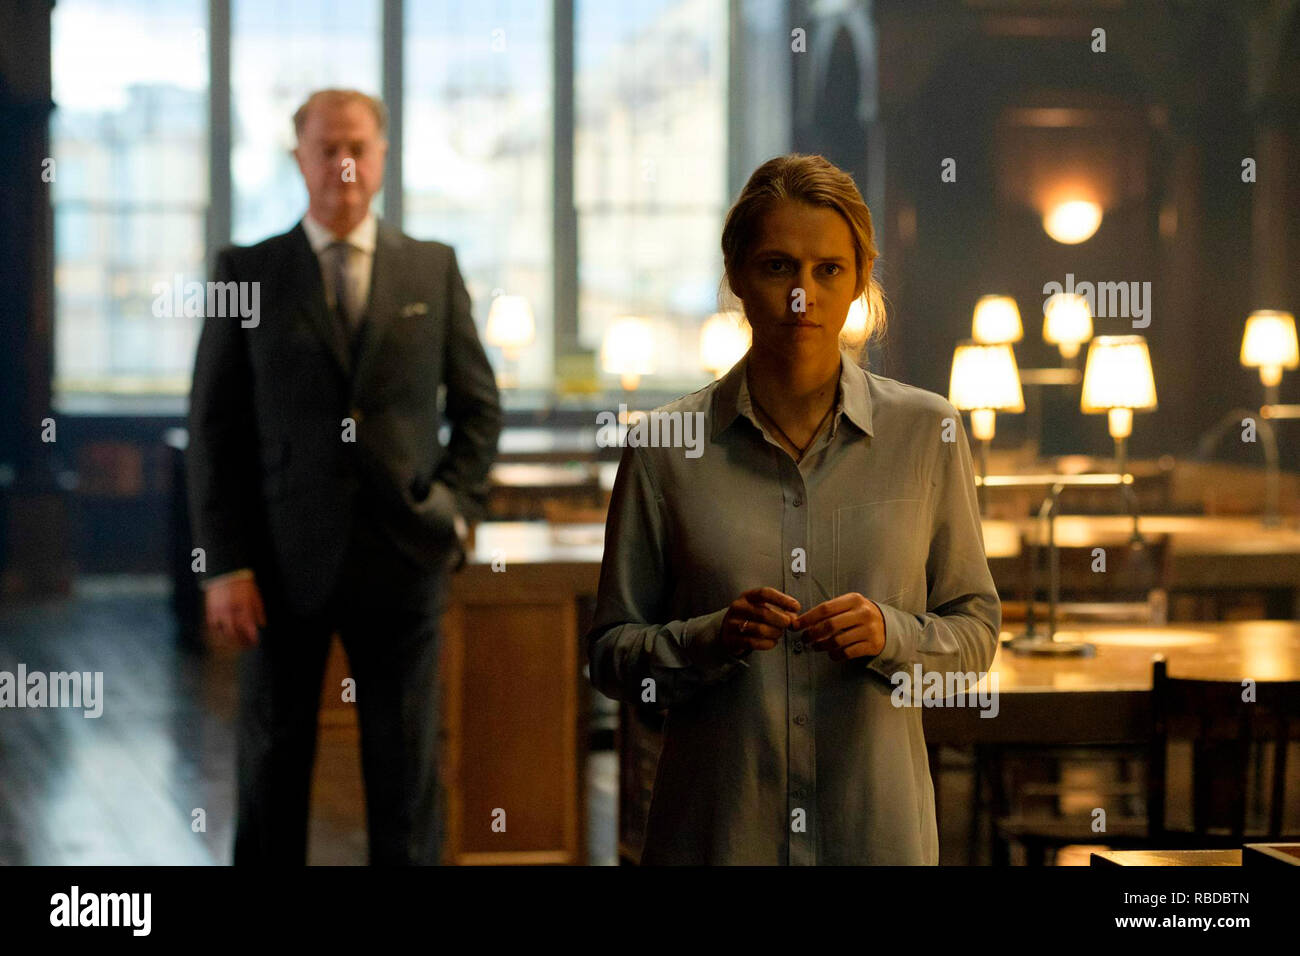 Prod DB © Sky UK Limited - Bad Wolf / DR A DISCOVERY OF WITCHES serie TV 2018- GB saison 1 episode 3 Owen Teale Teresa Palmer. d'apres le roman de Deborah Harkness based on the 'All Souls Trilogy' by Deborah Harkness - Stock Image